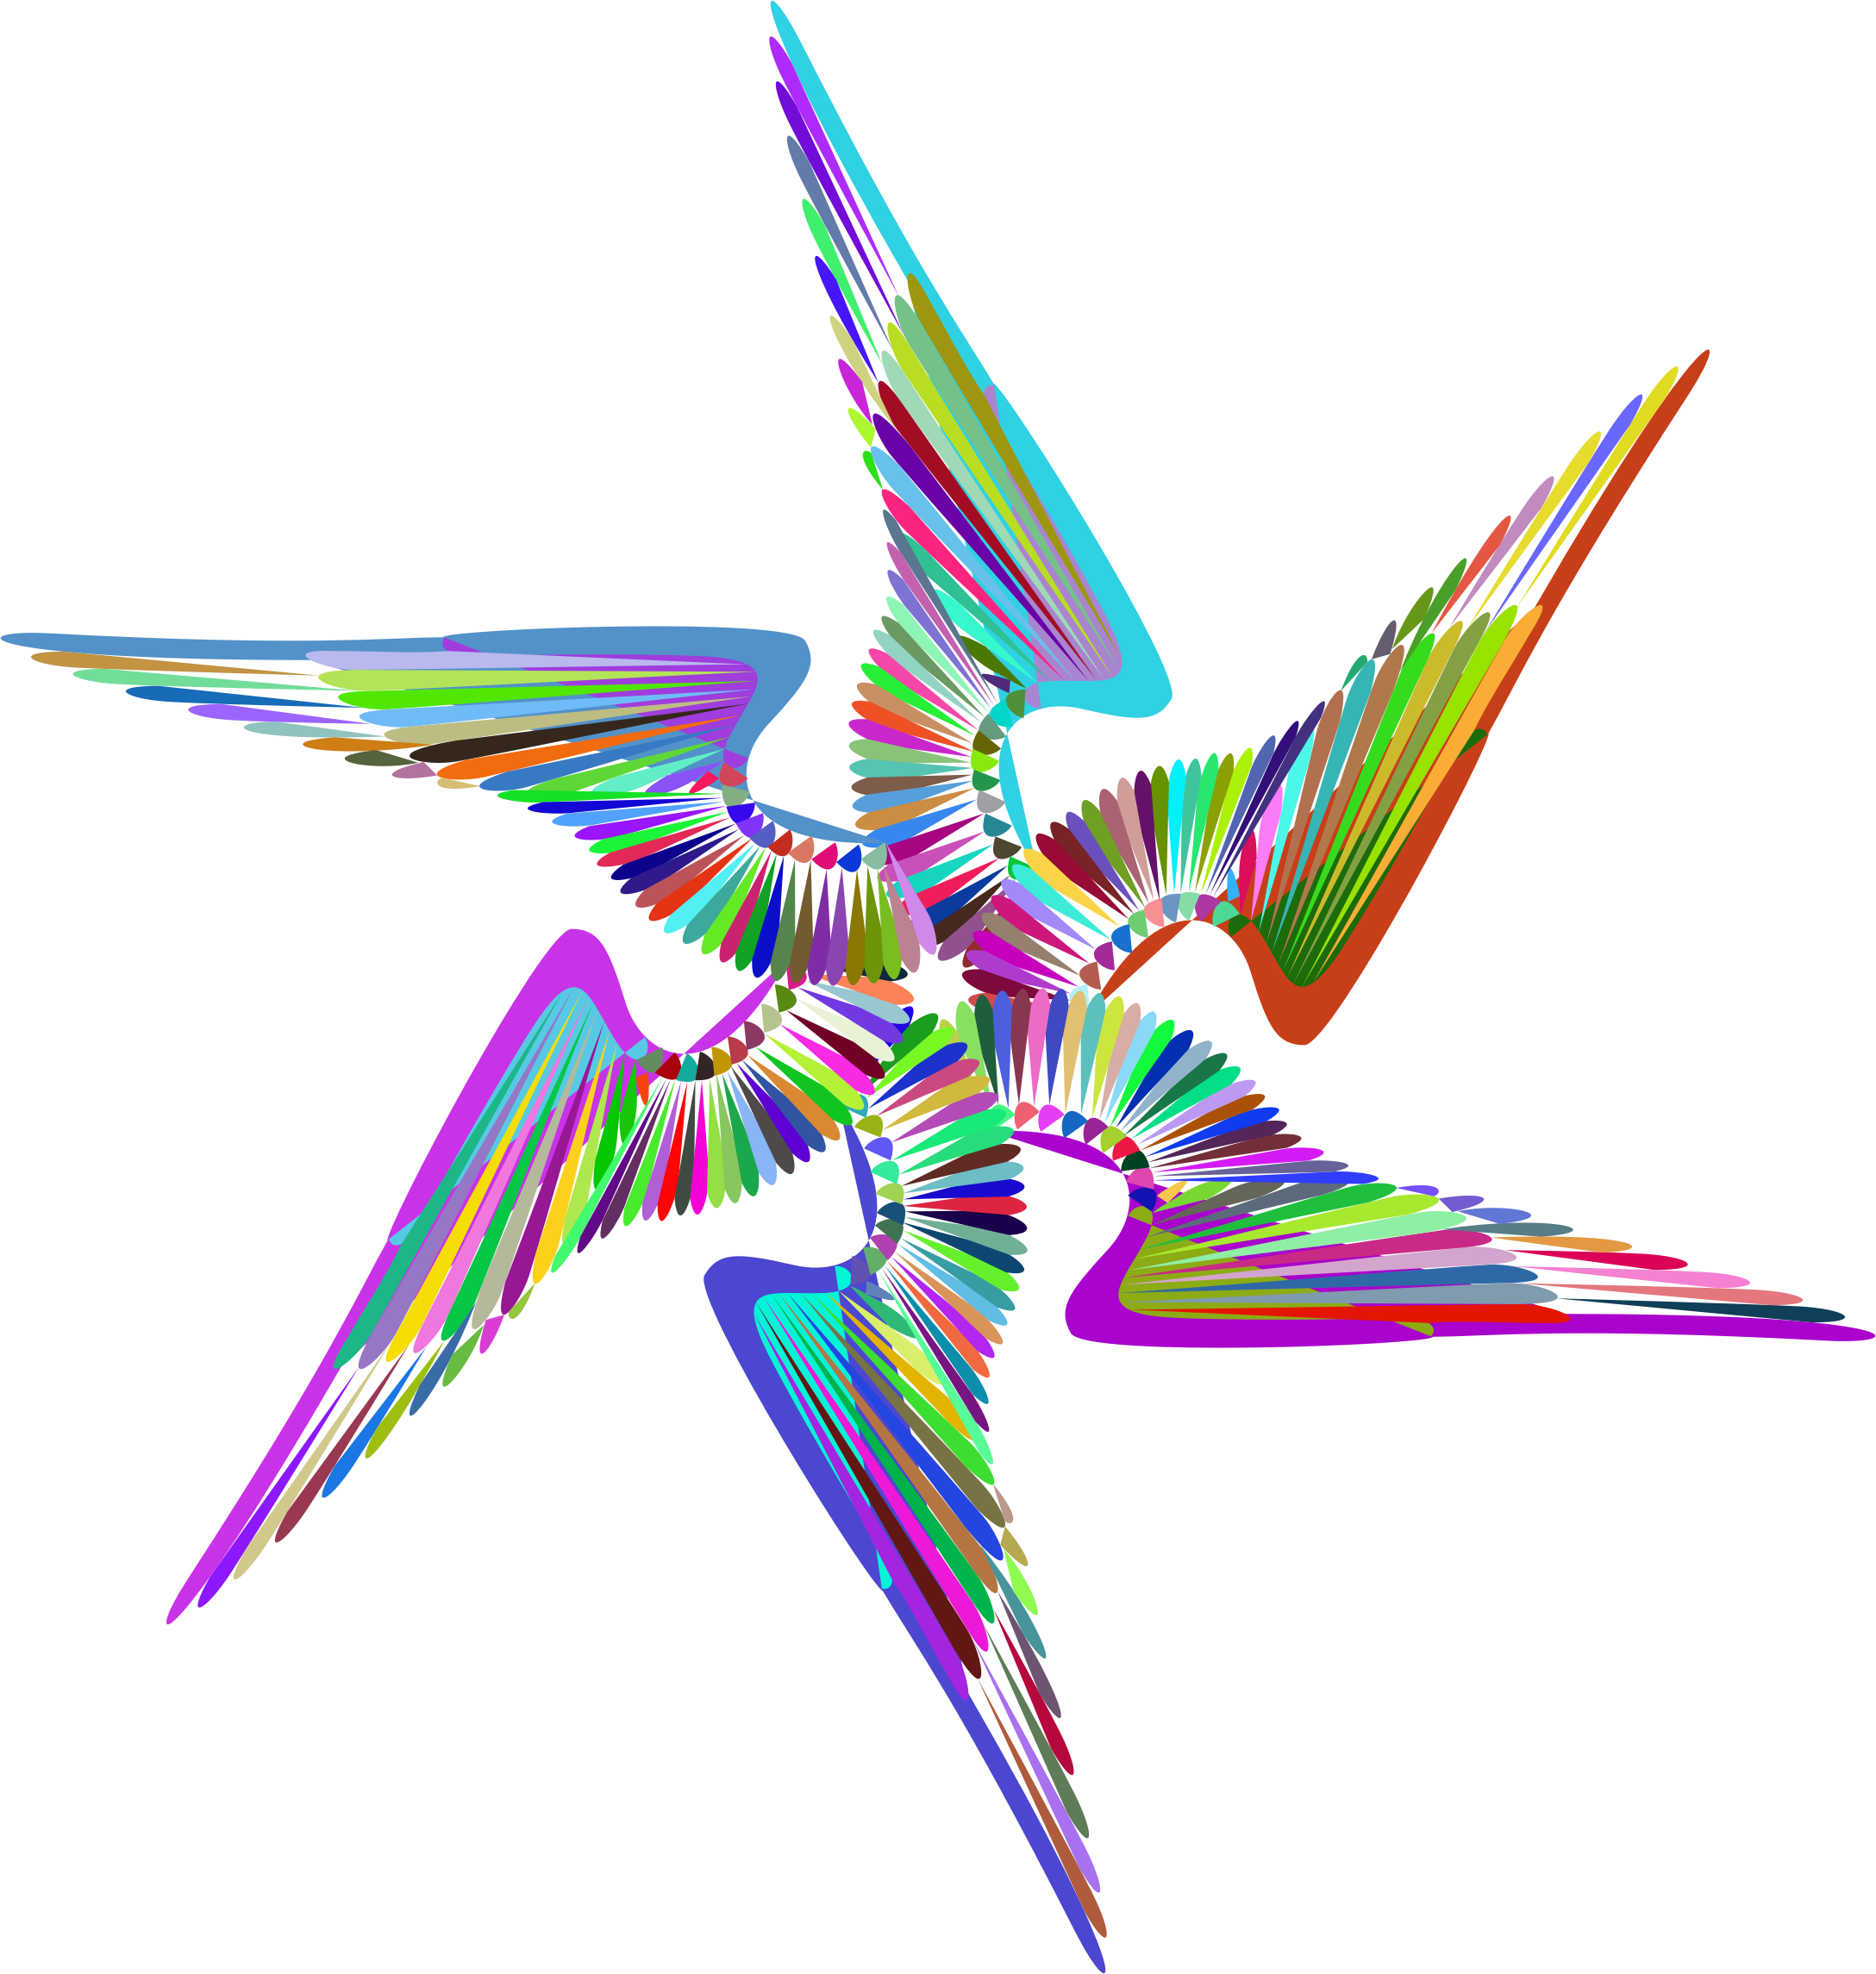 Wings Design Line Art Prismatic by GDJ